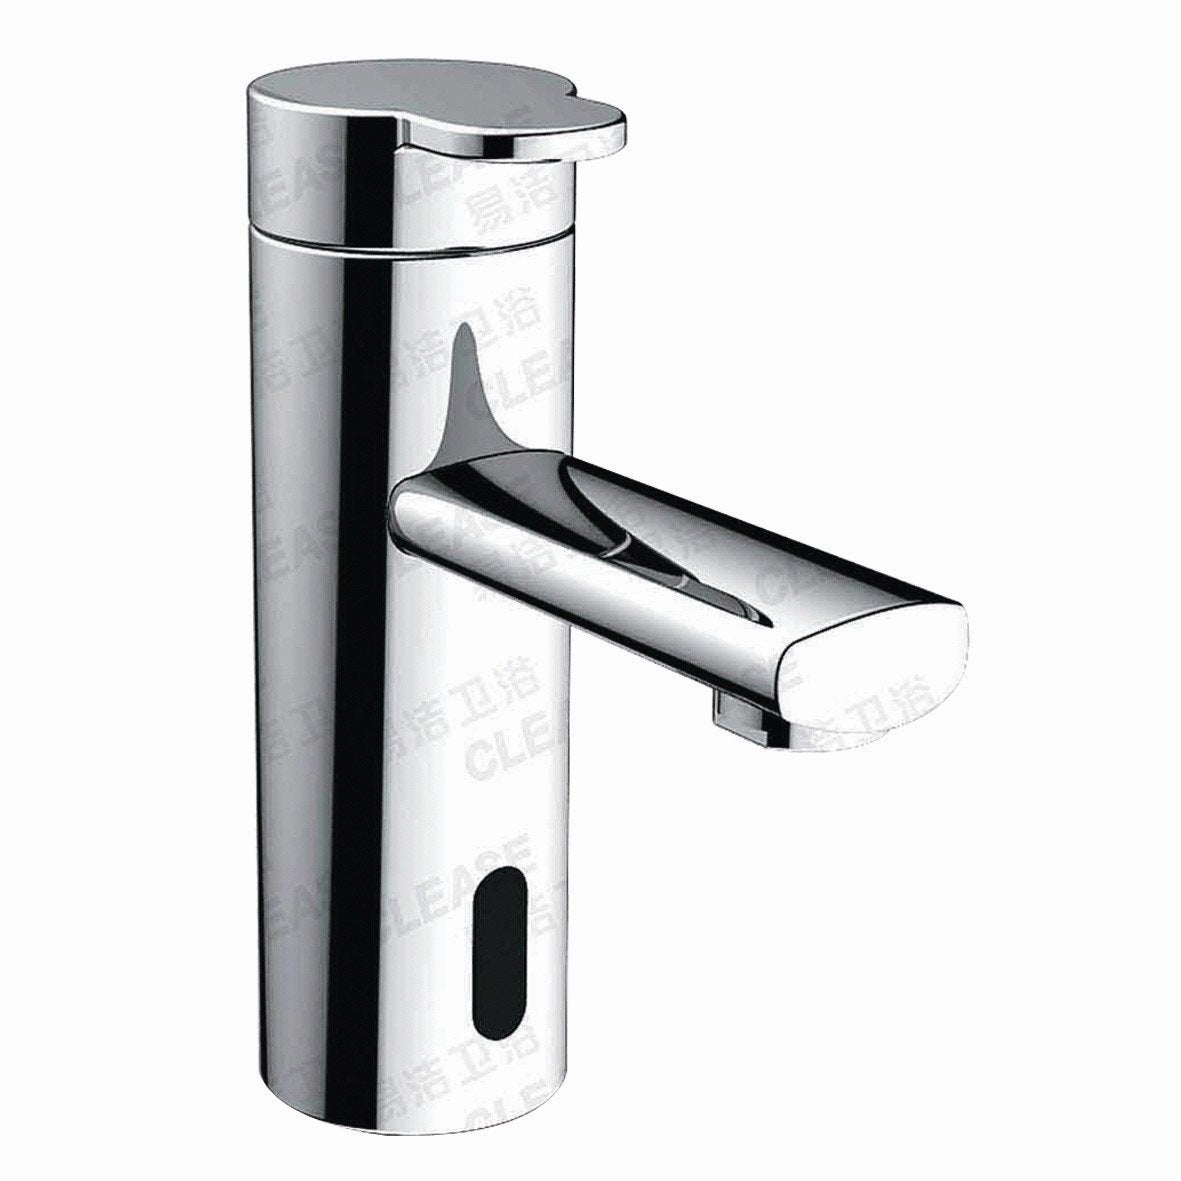 Robinet automatique infrarouge - Mitigeur lavabo leroy merlin ...